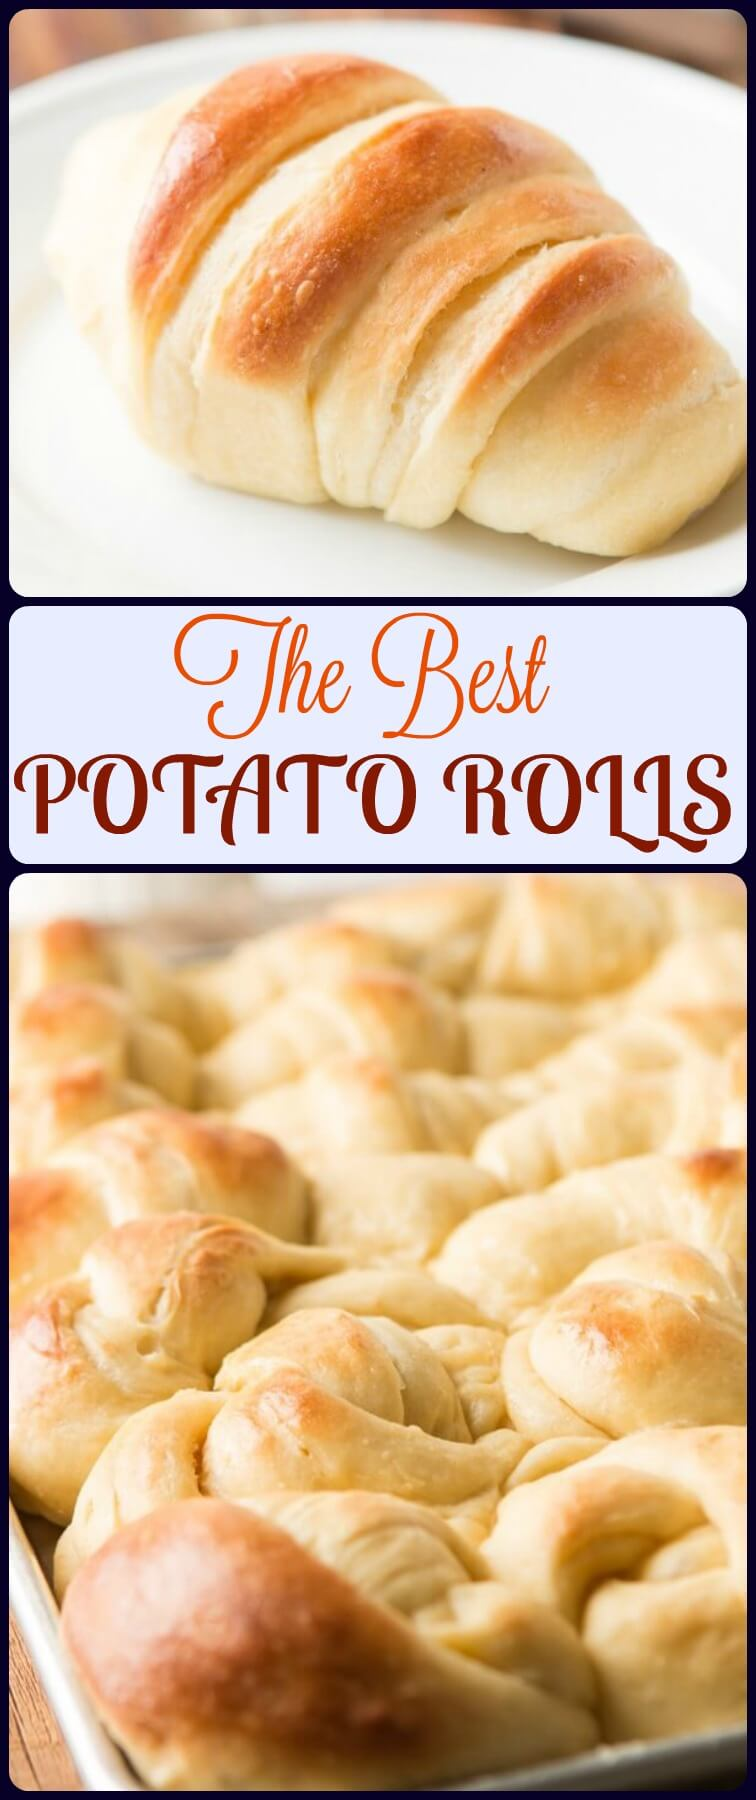 These potato rolls don't require any kneading and are hands down the best rolls we've ever had. Our number one most requested recipe. ohsweetbasil.com